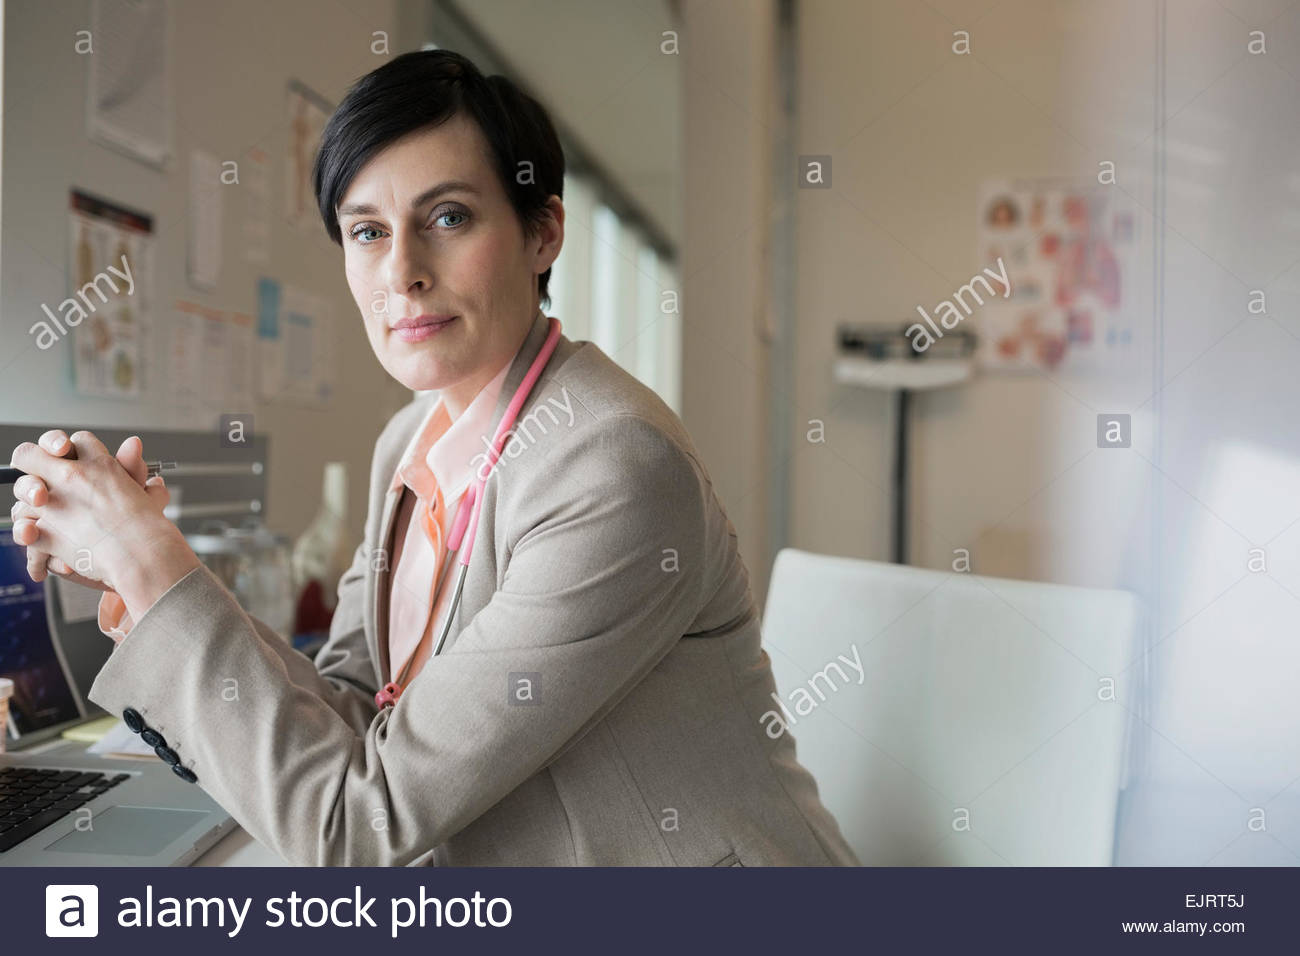 Portrait of serious doctor with hands clasped - Stock Image